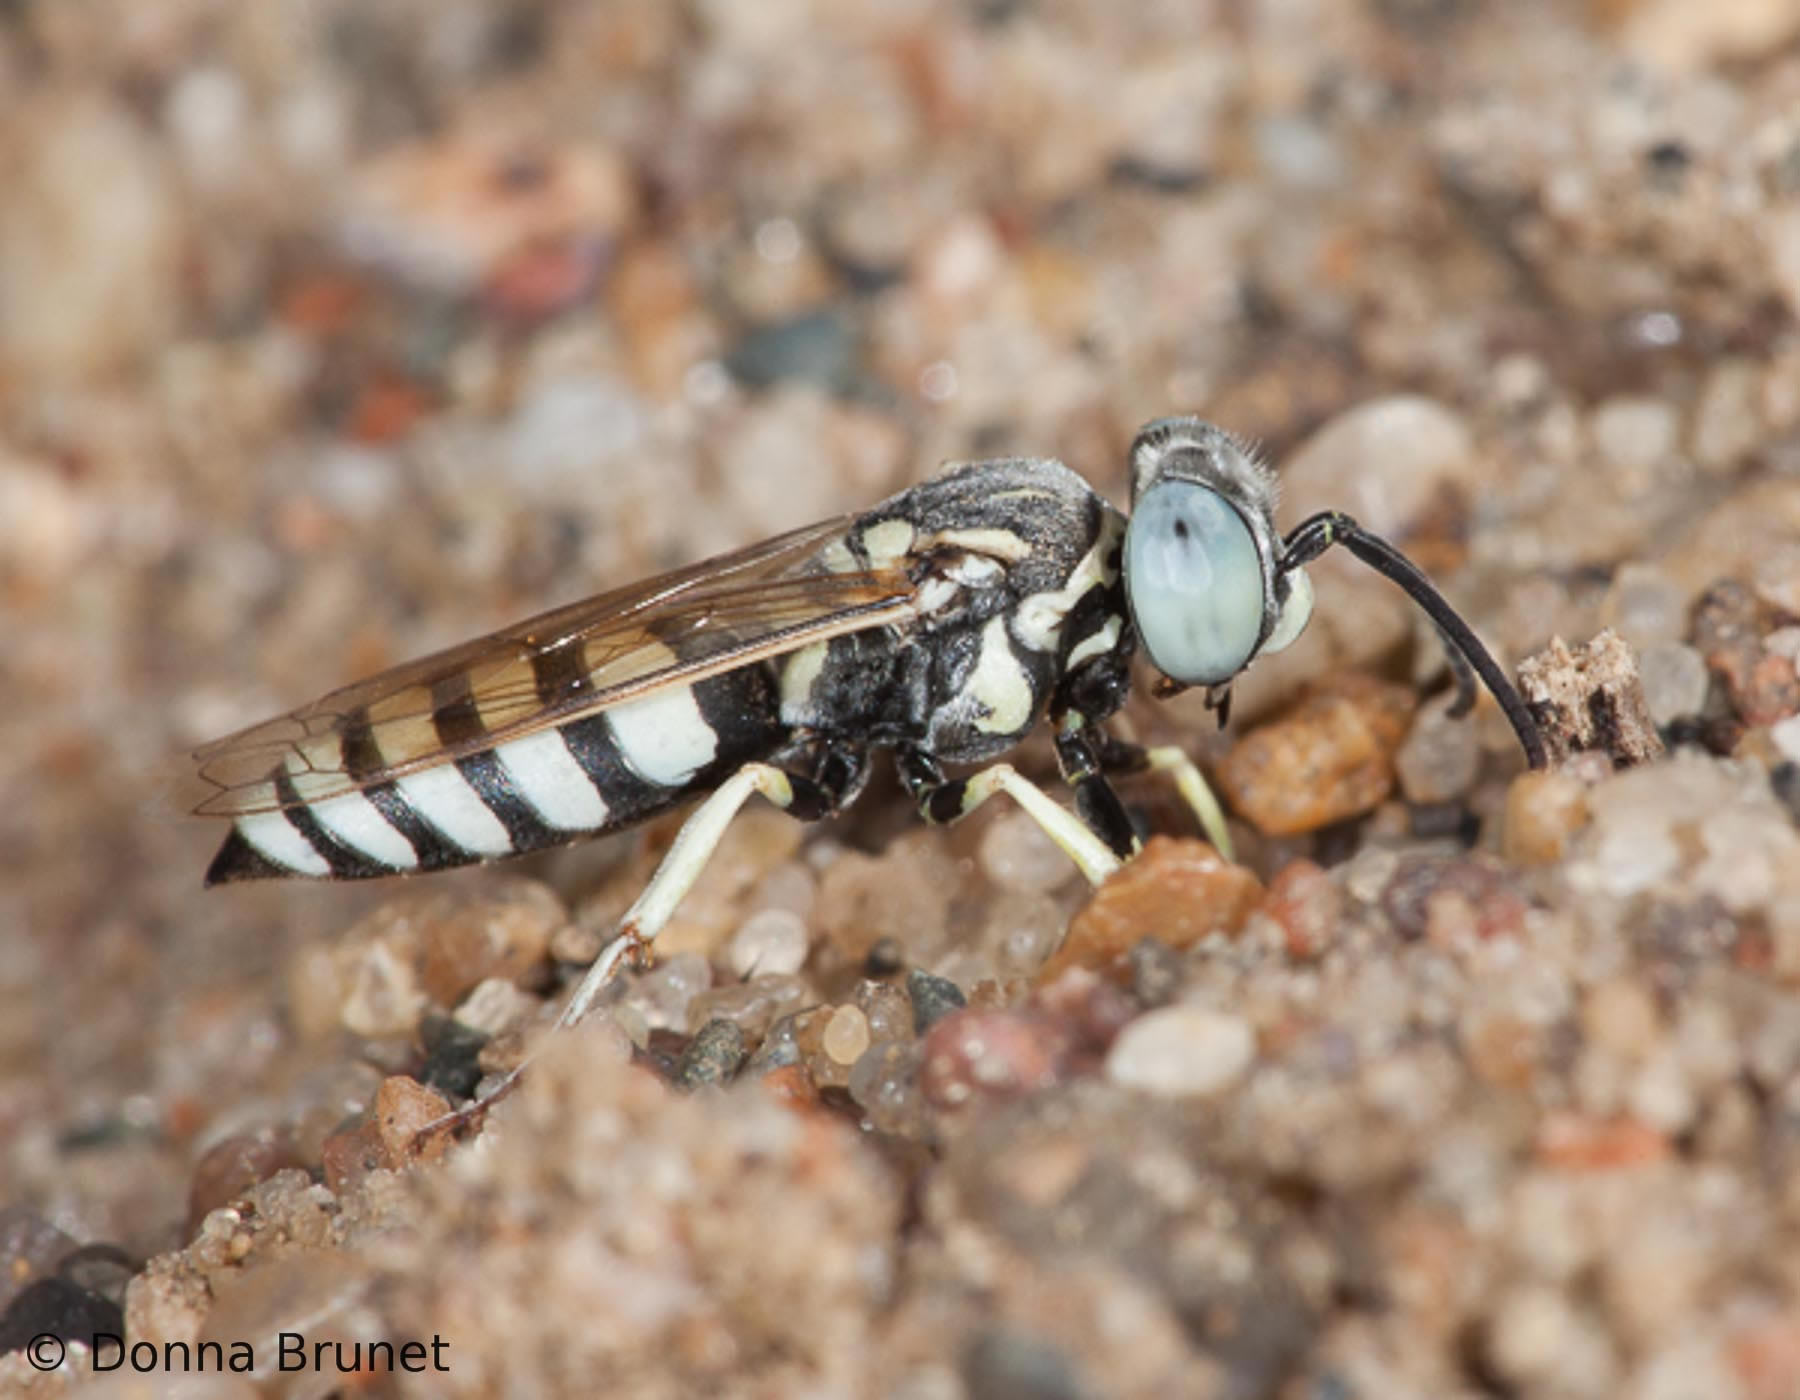 What attracts sand wasps